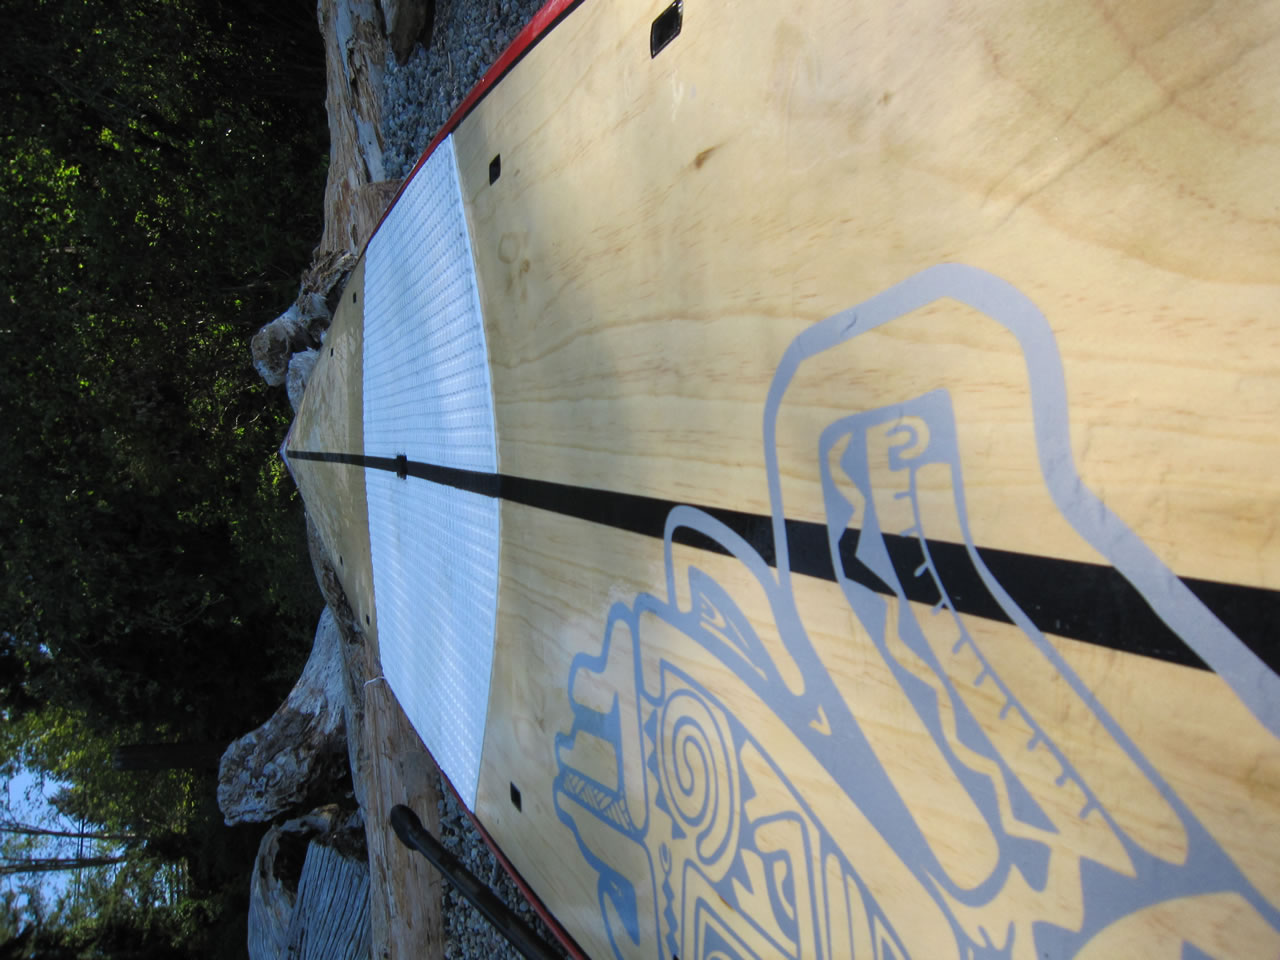 starboard-touring-standup-paddleboard-12-615